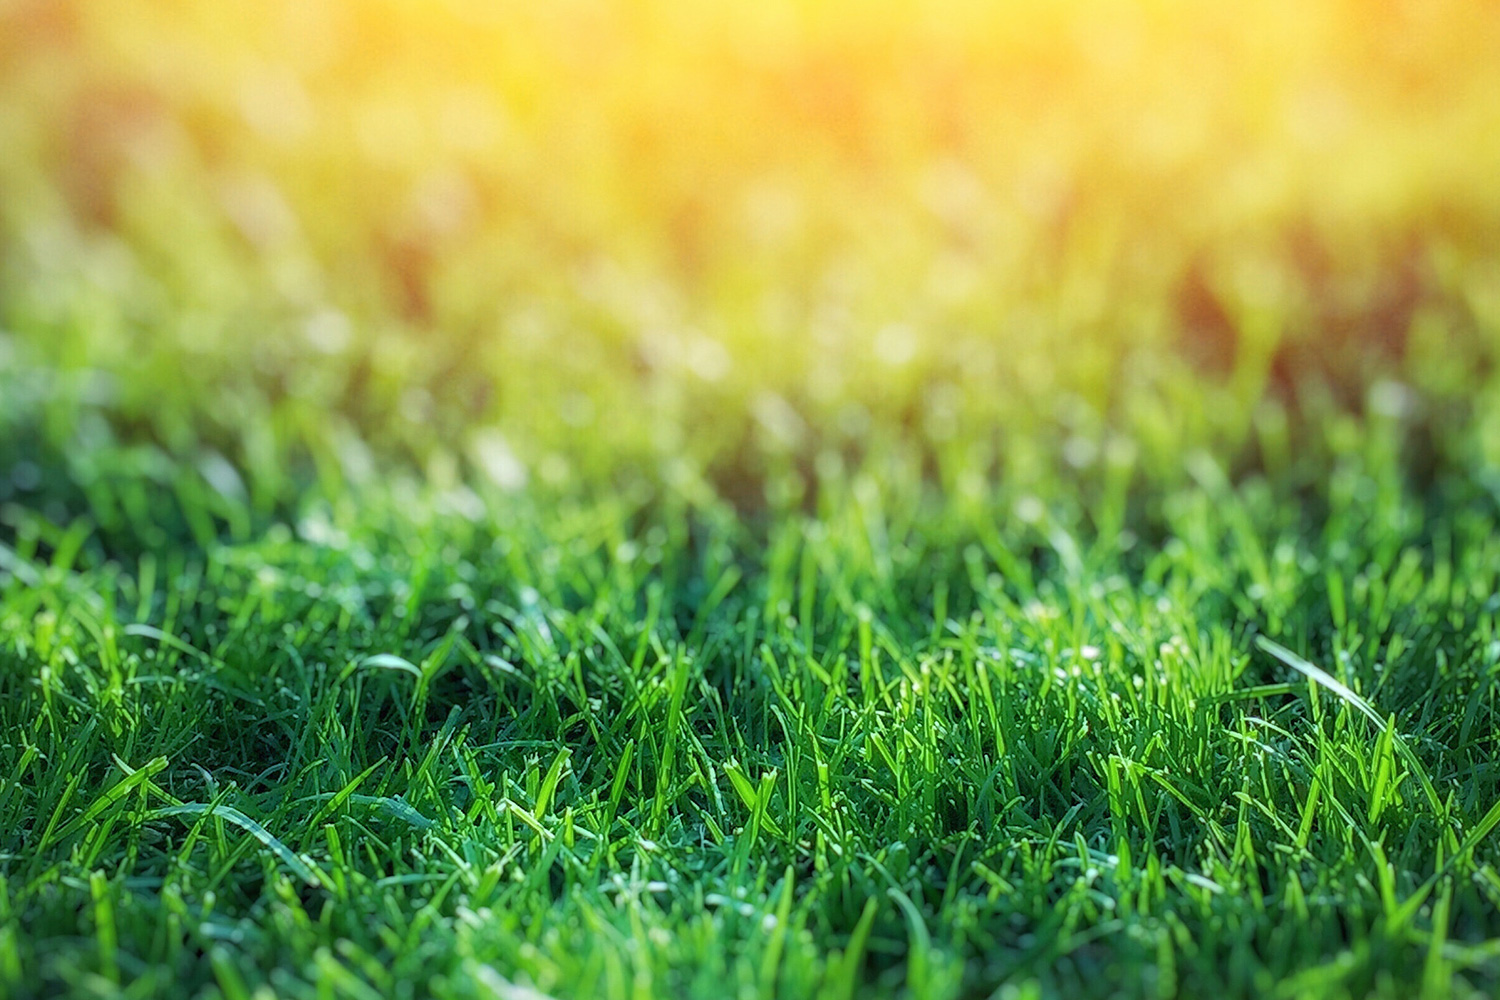 Getting-Brown-Patches-in-Your-Lawn–4-Tips-to-Properly-Prevent-Brown-Patch-Fungus